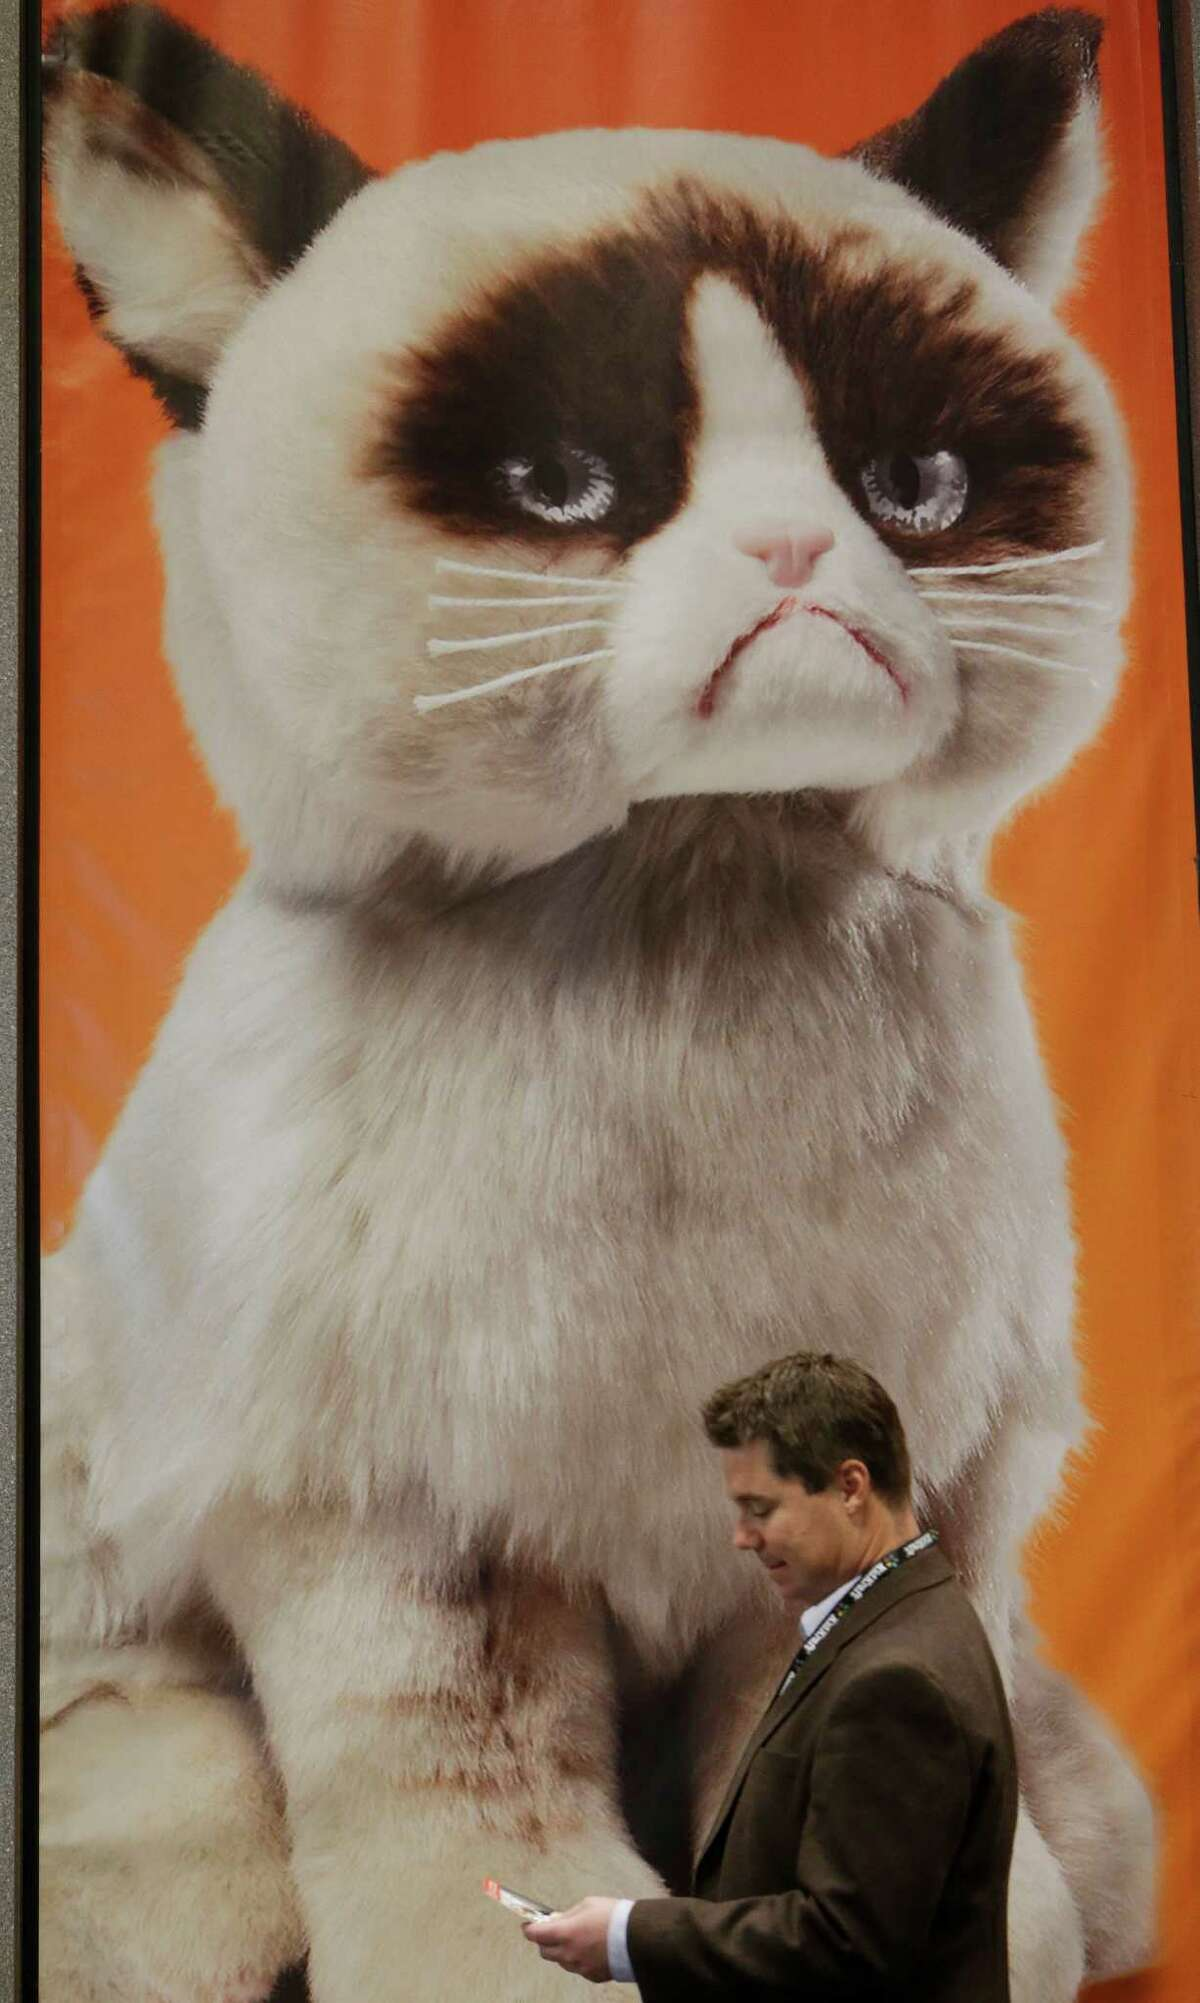 A man passes a Grumpy the Cat display near the Gund booth at Toy Fair 2014 at the Jacob K. Javits Convention Center Sunday, Feb. 16, 2014, in New York. The 111th American International Toy Fair opened in New York Sunday. (AP Photo/Frank Franklin II) ORG XMIT: NYFF109